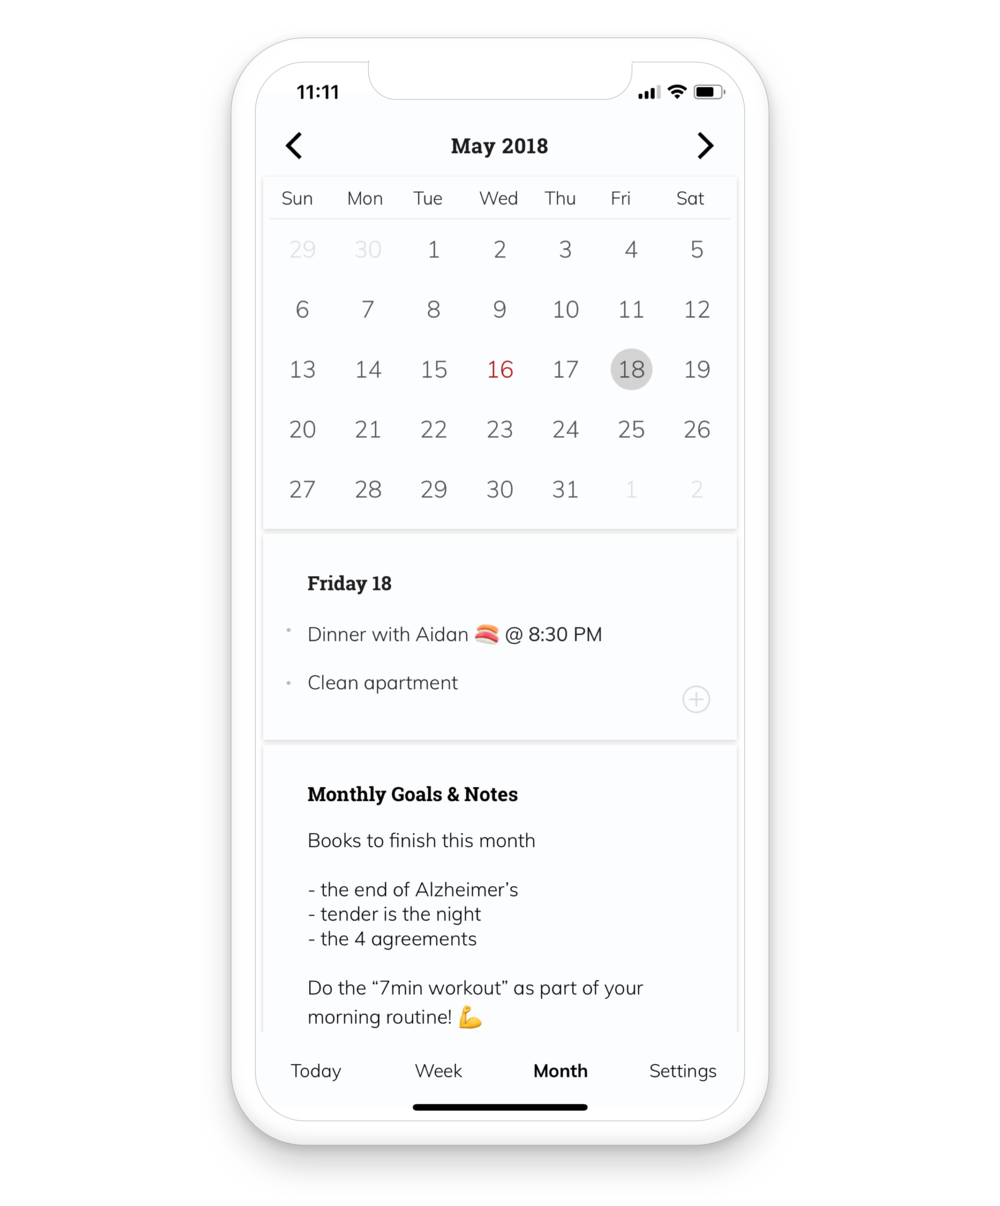 Set your Goals & Notes, both Weekly and Monthly: - Track your bigger picture to-do's in both of the view options. See them as you plan your daily tasks.